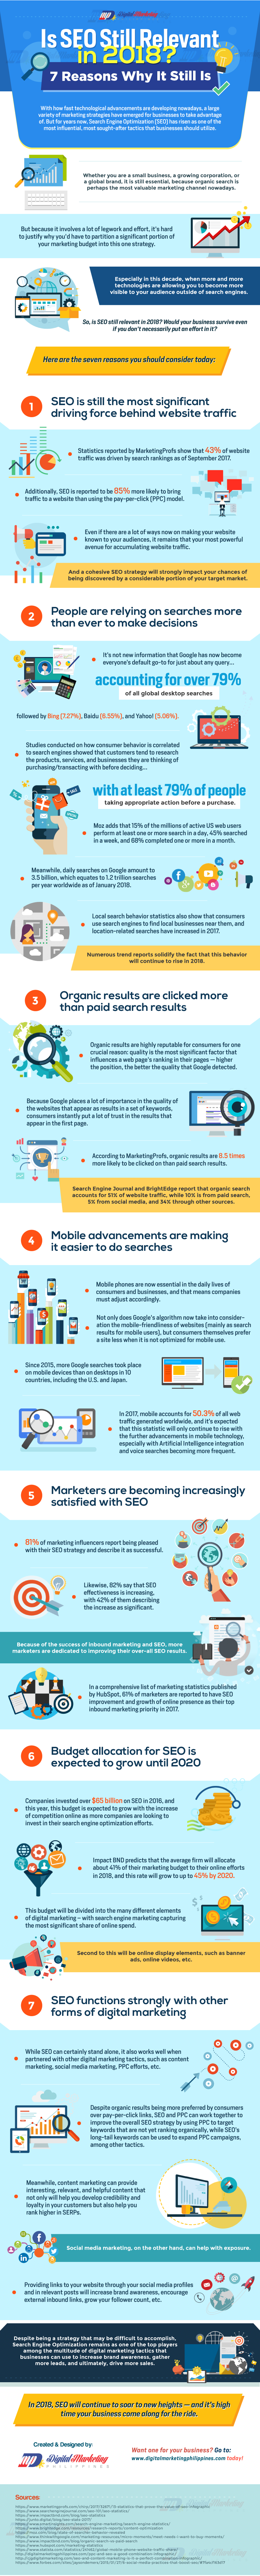 Is SEO Still Relevant in 2018? [Infographic]